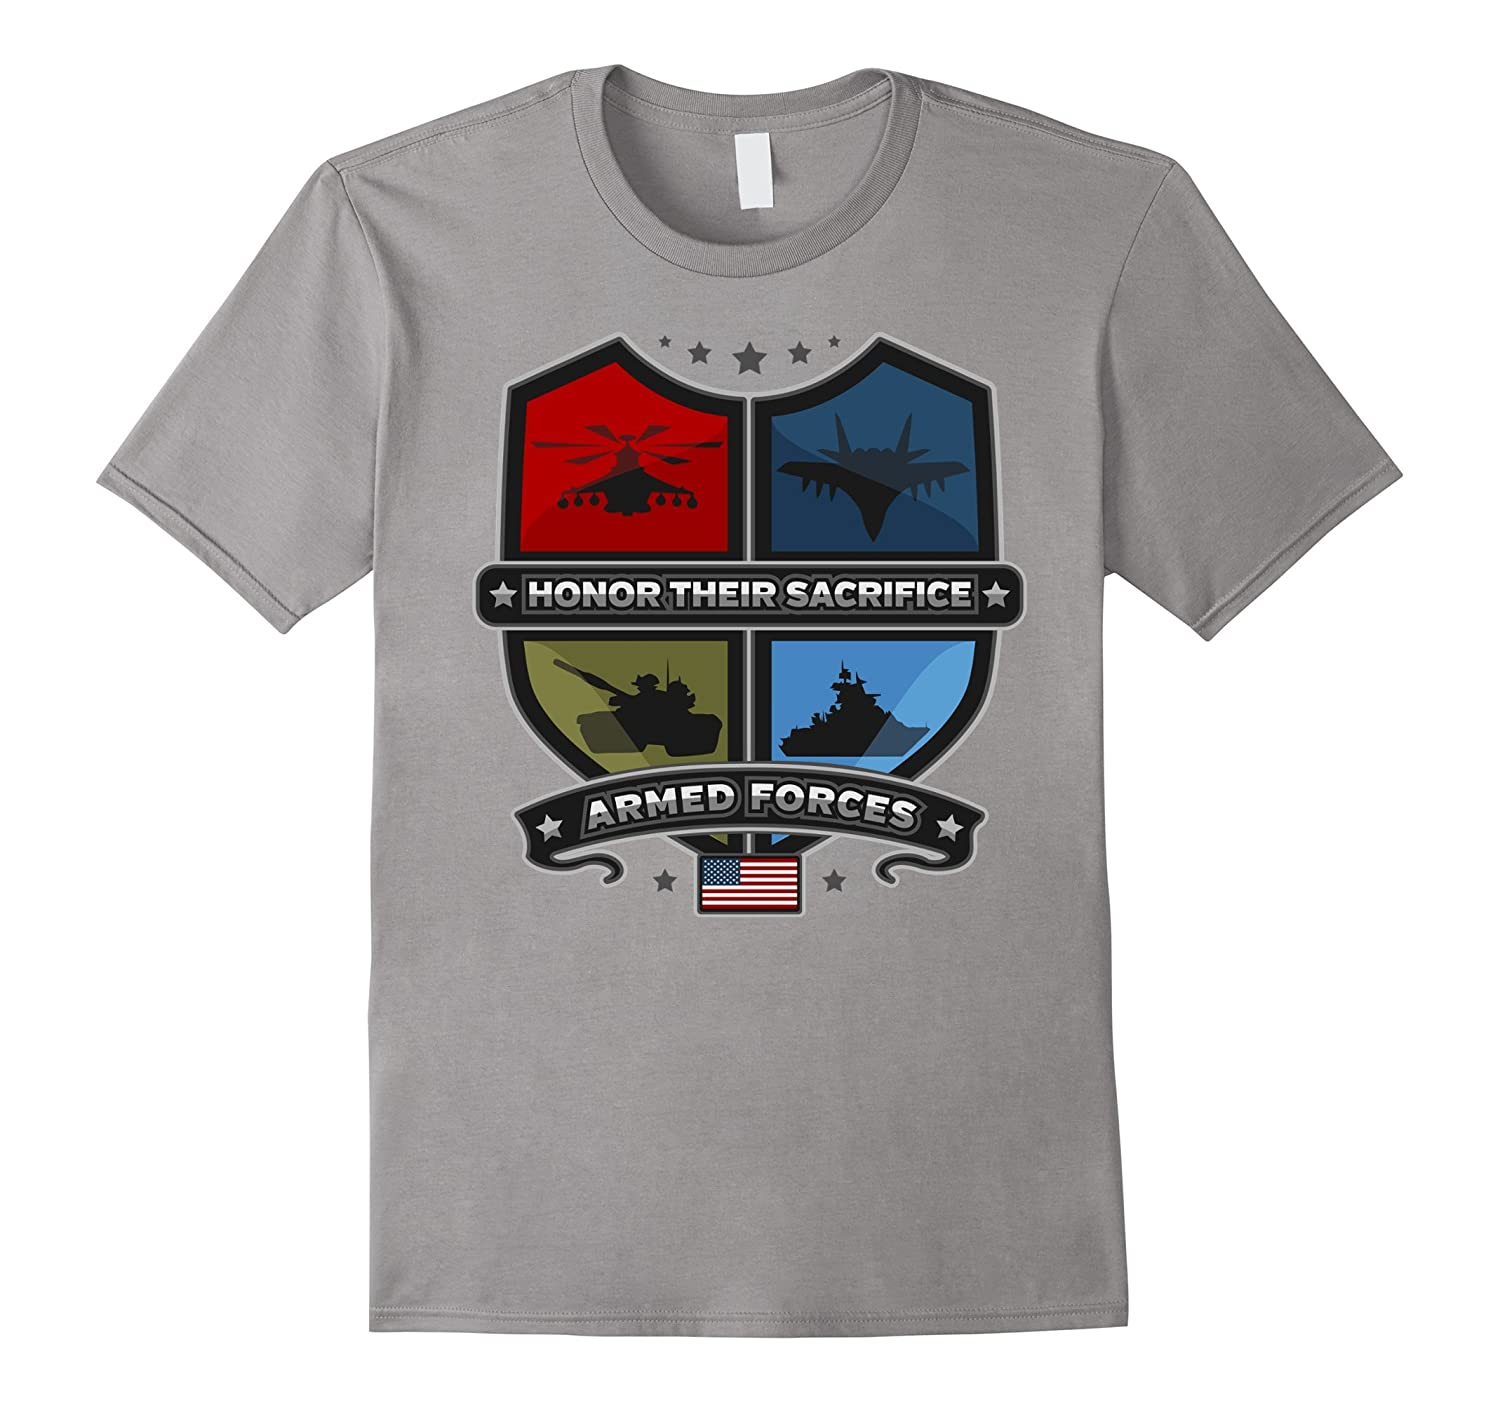 Armed Forces Day Honor Their Sacrifice Military T-shirt